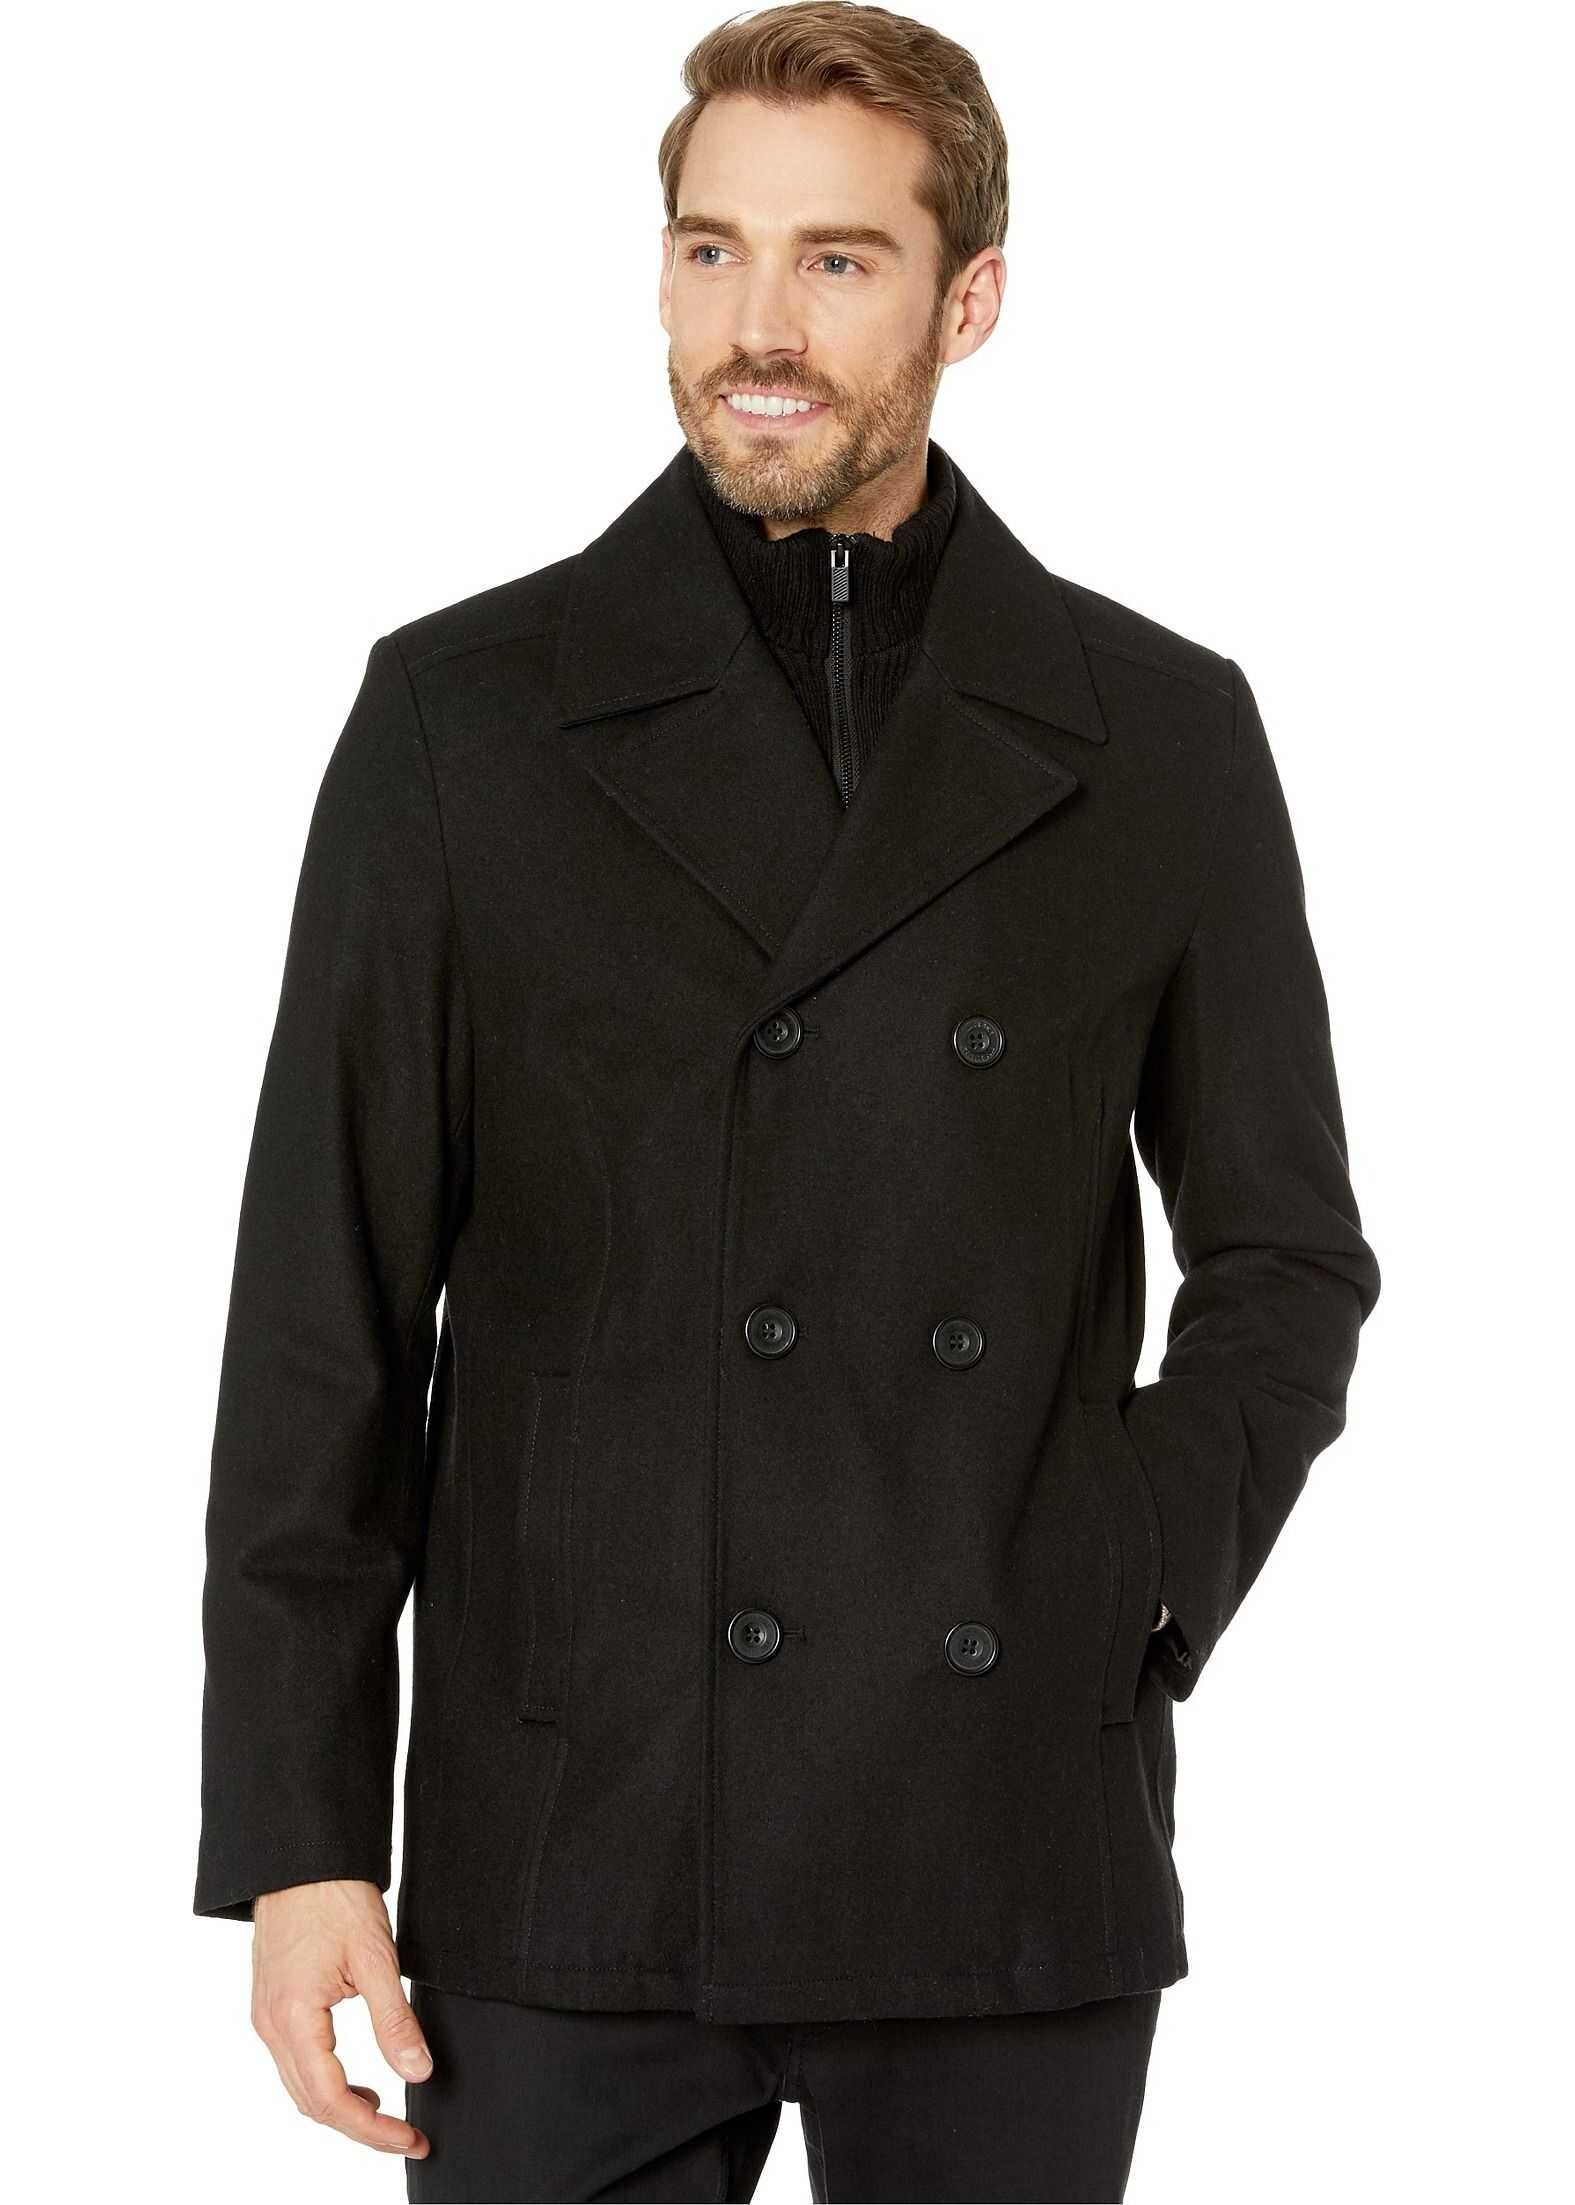 Kenneth Cole New York Remington Peacoat Black